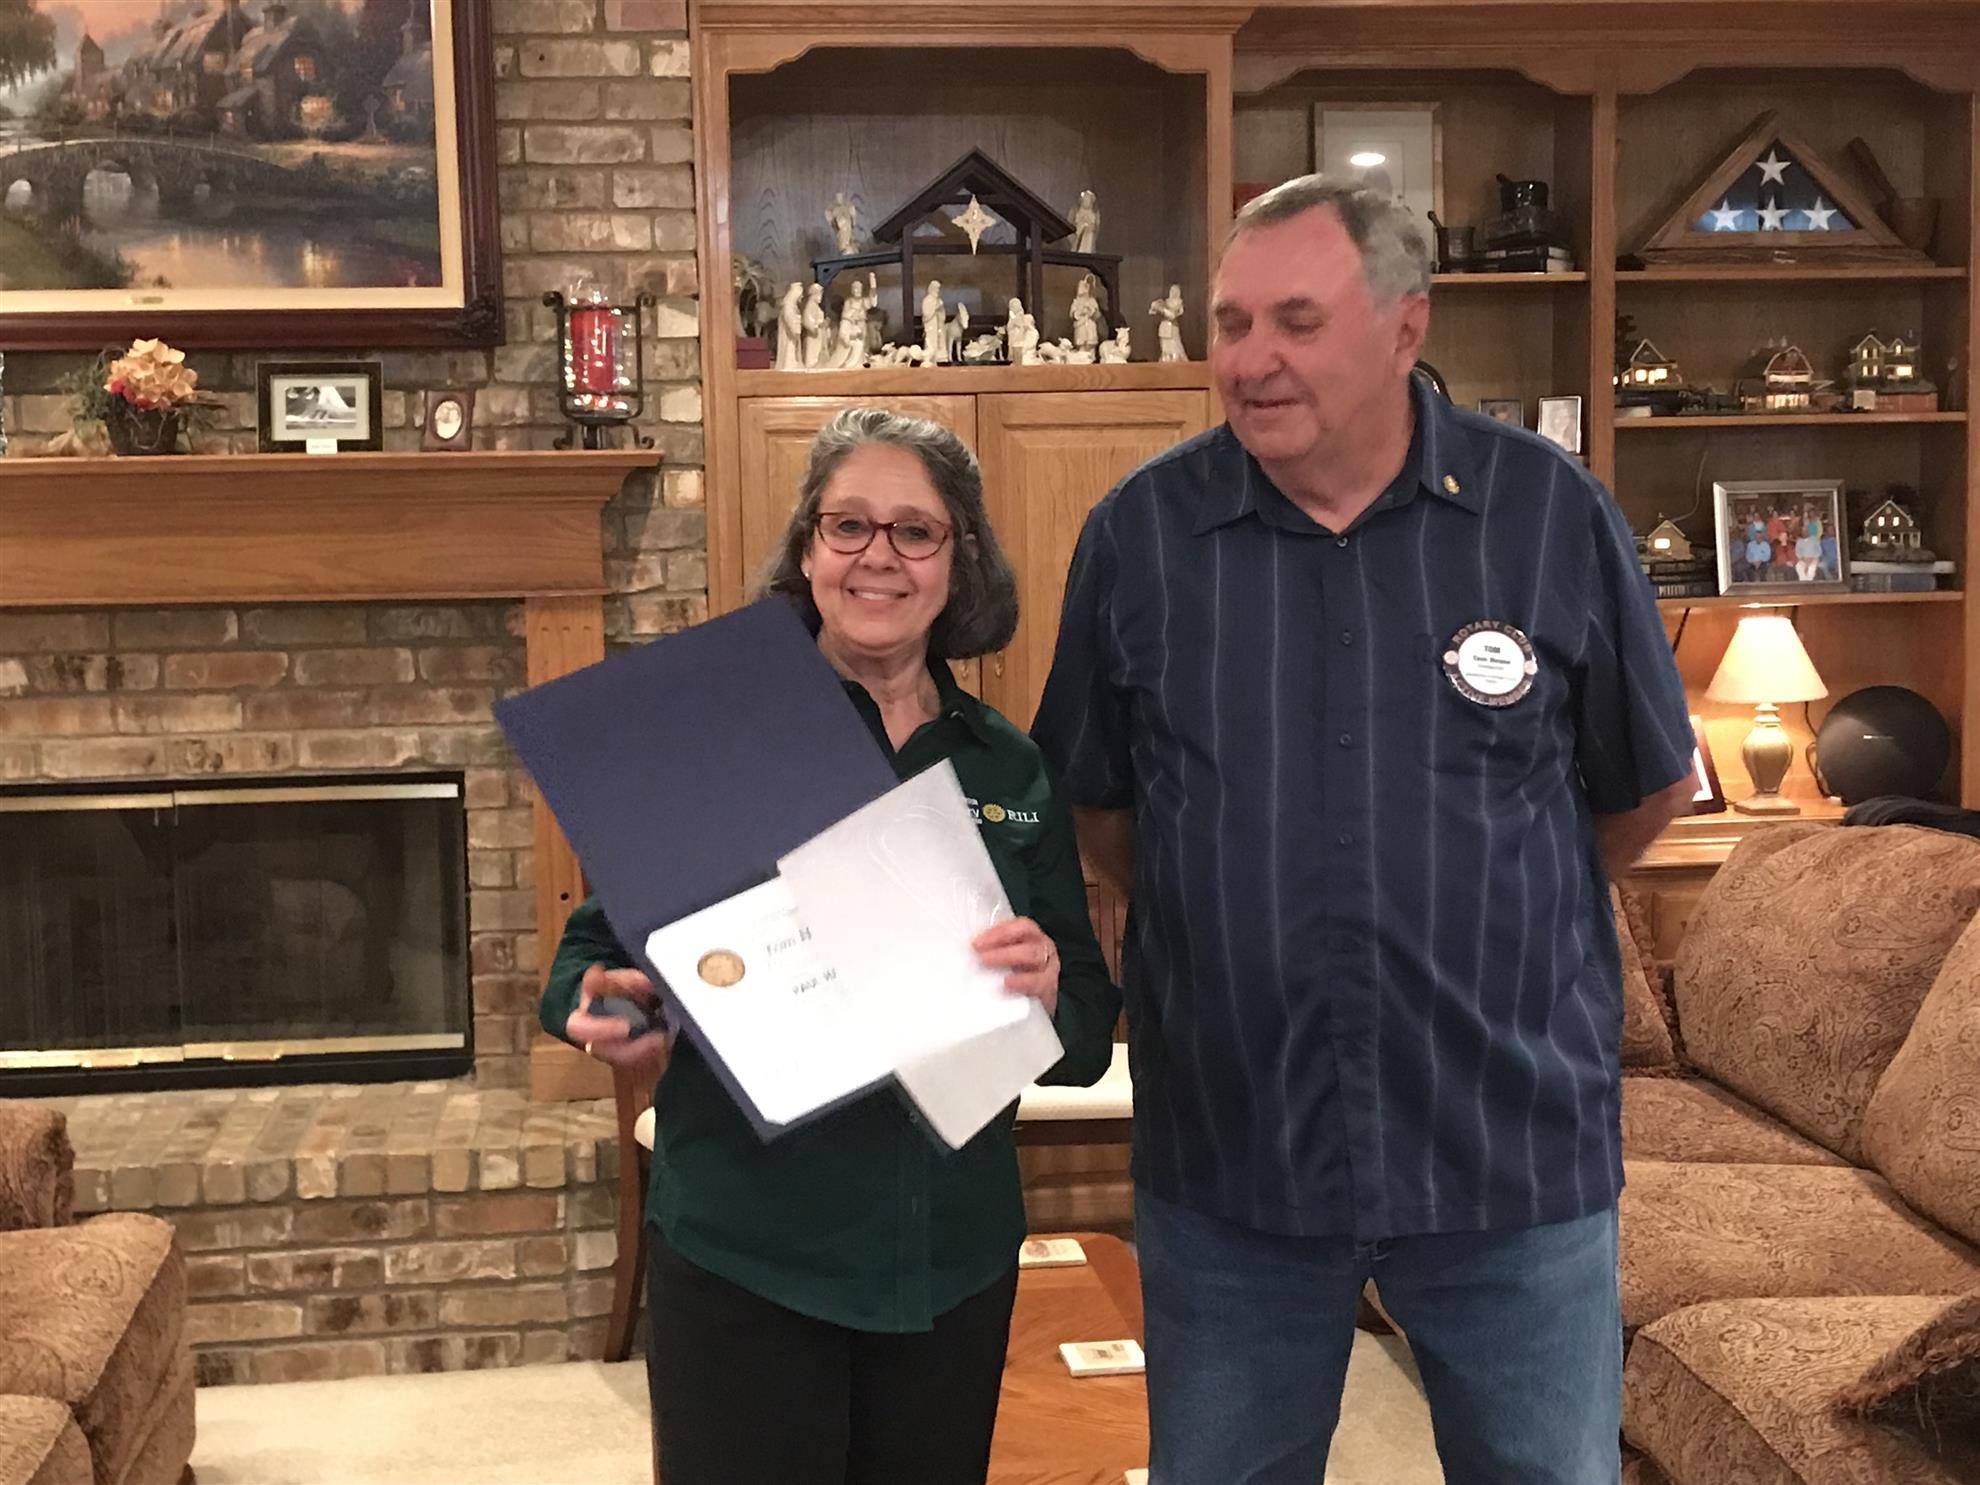 Stories | Rotary District 5730